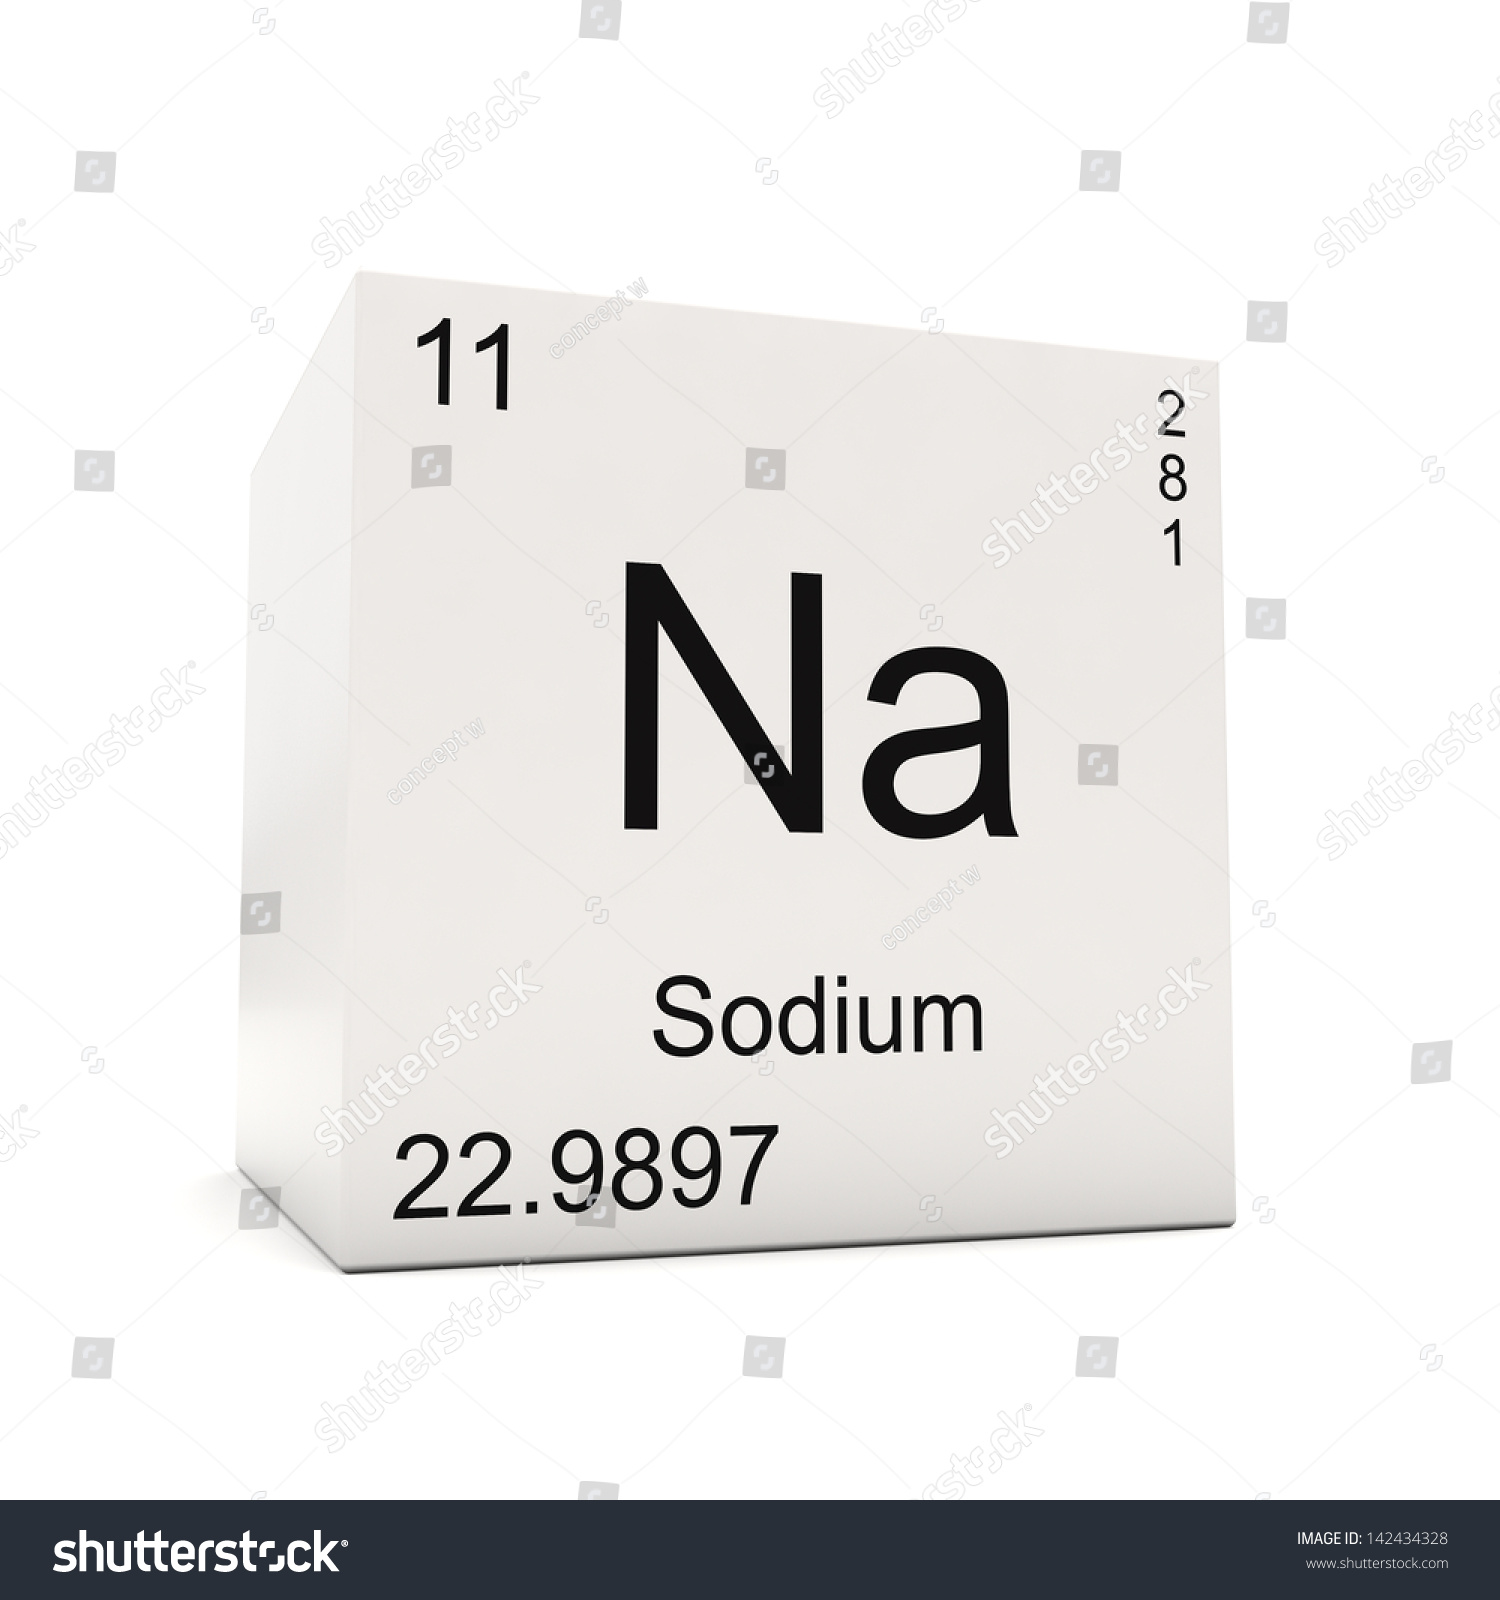 Cube sodium element periodic table isolated stock illustration cube of sodium element of the periodic table isolated on white background gamestrikefo Image collections